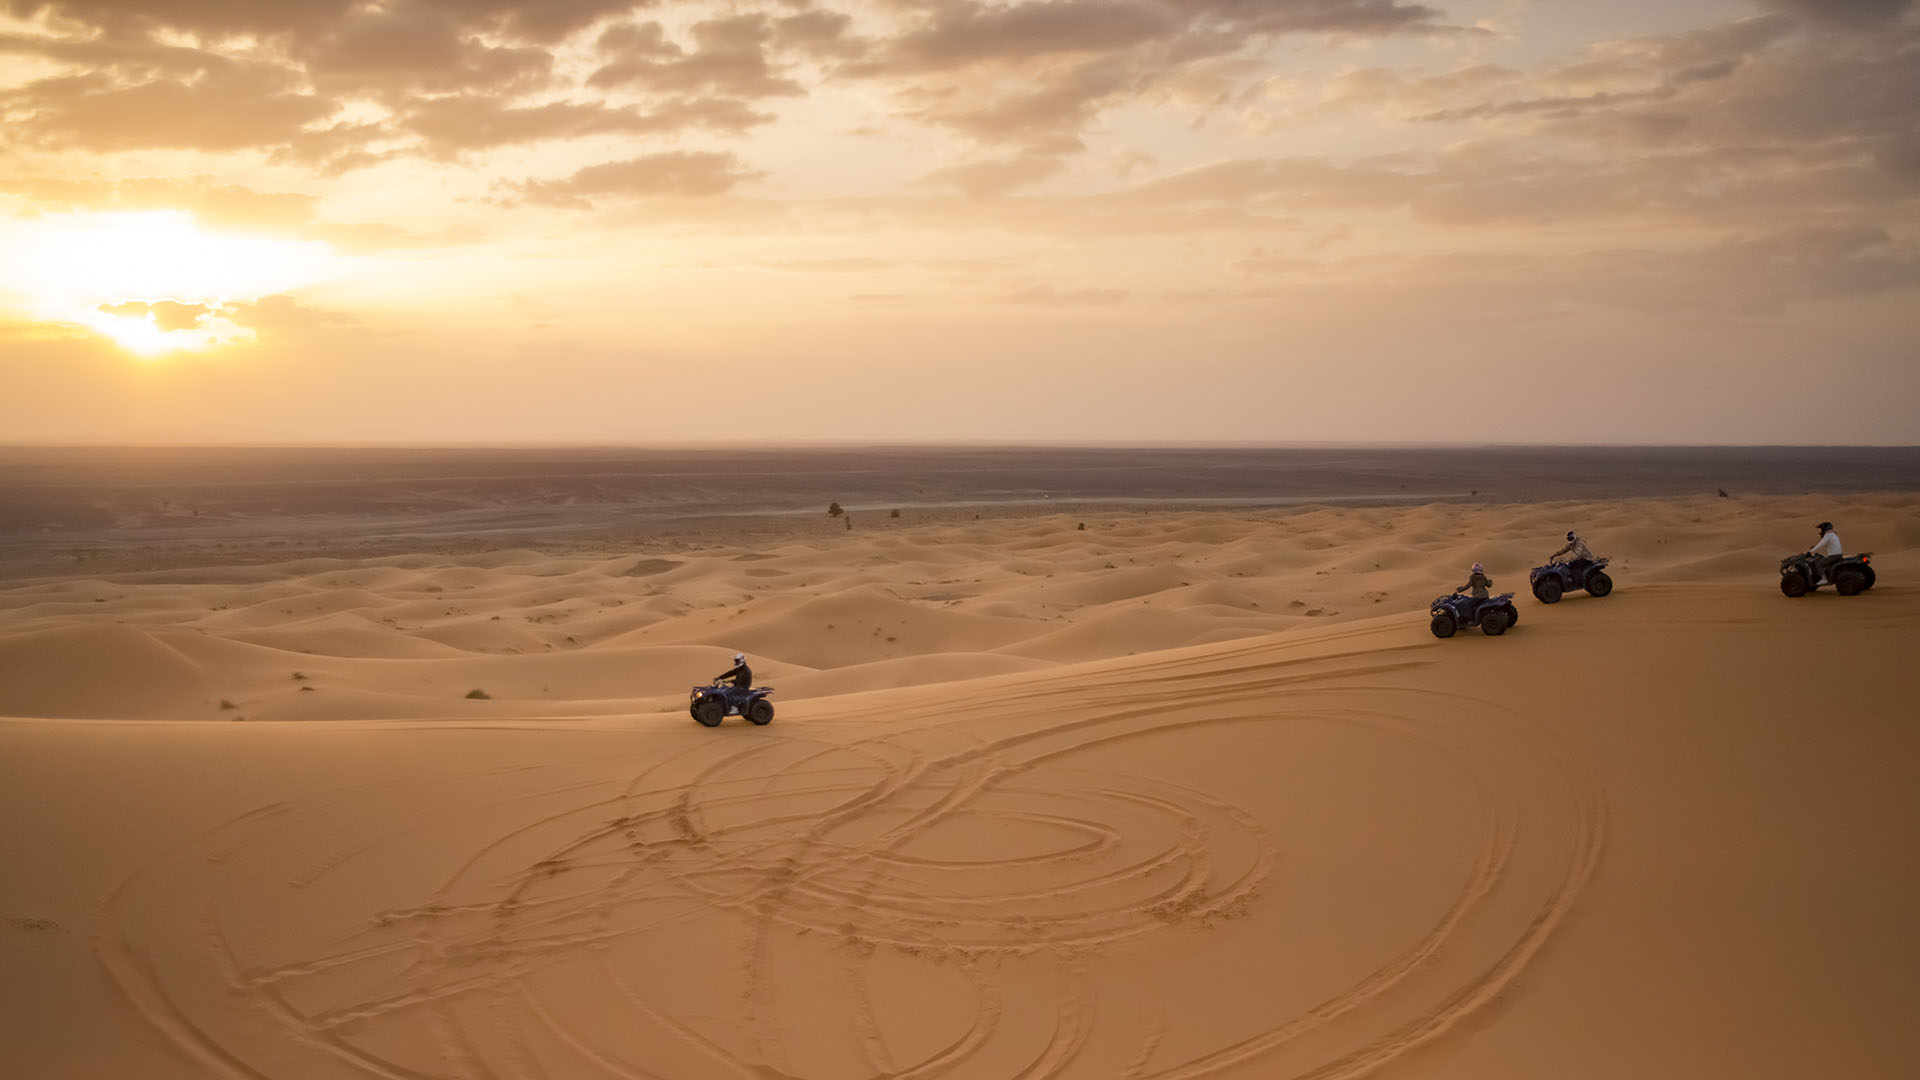 Quads during the sunset in Erg Chebbi, Merzouga - Rooms, photo by Ezyê Moleda, all rights reserved